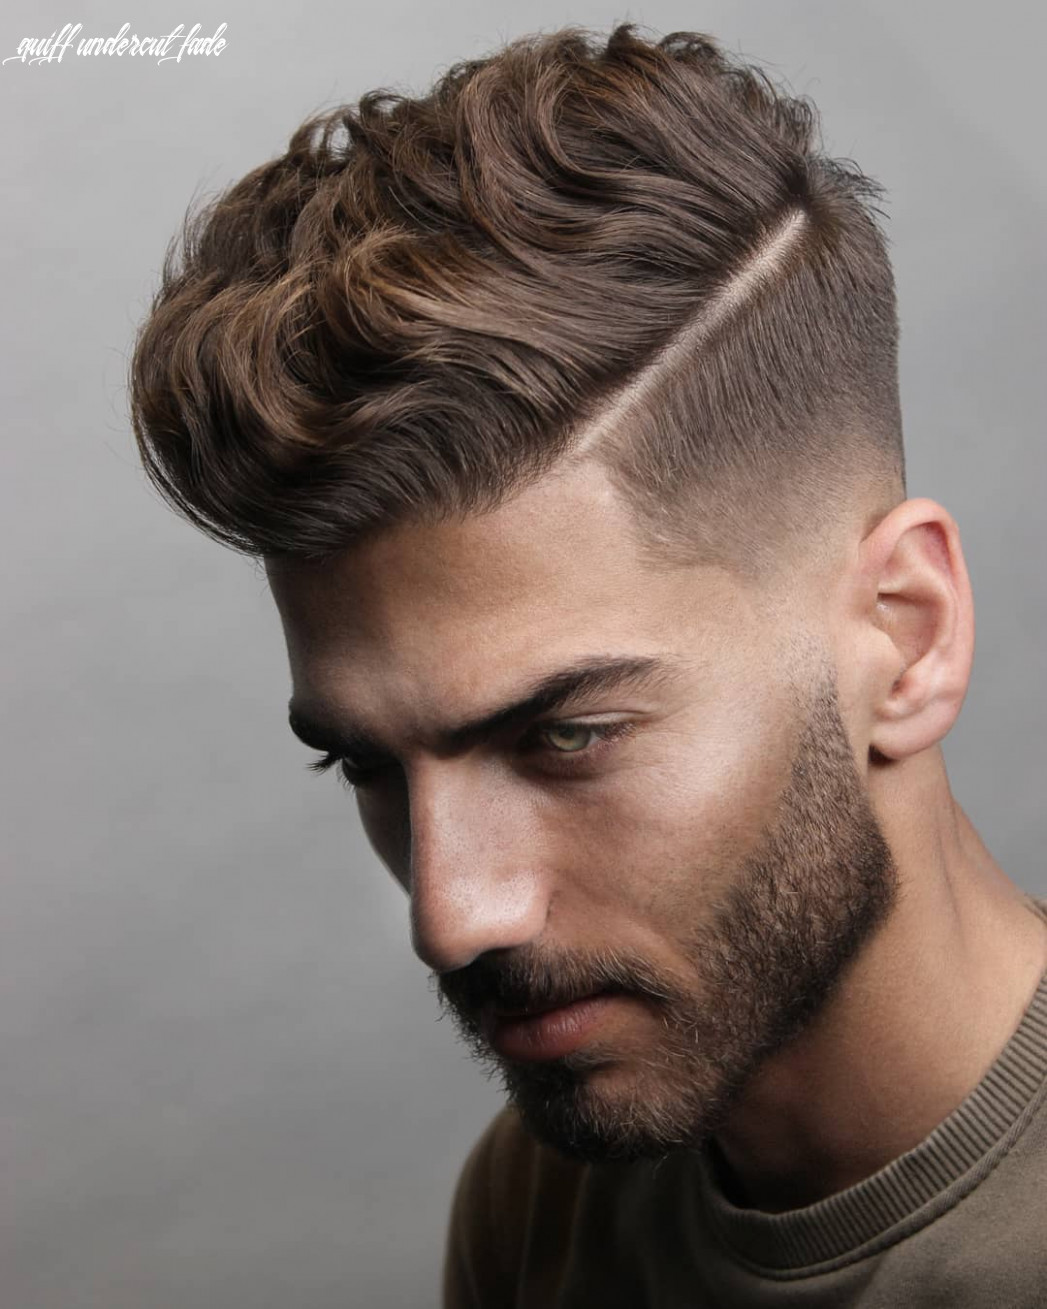 9 short on sides long on top haircuts for men | man haircuts quiff undercut fade